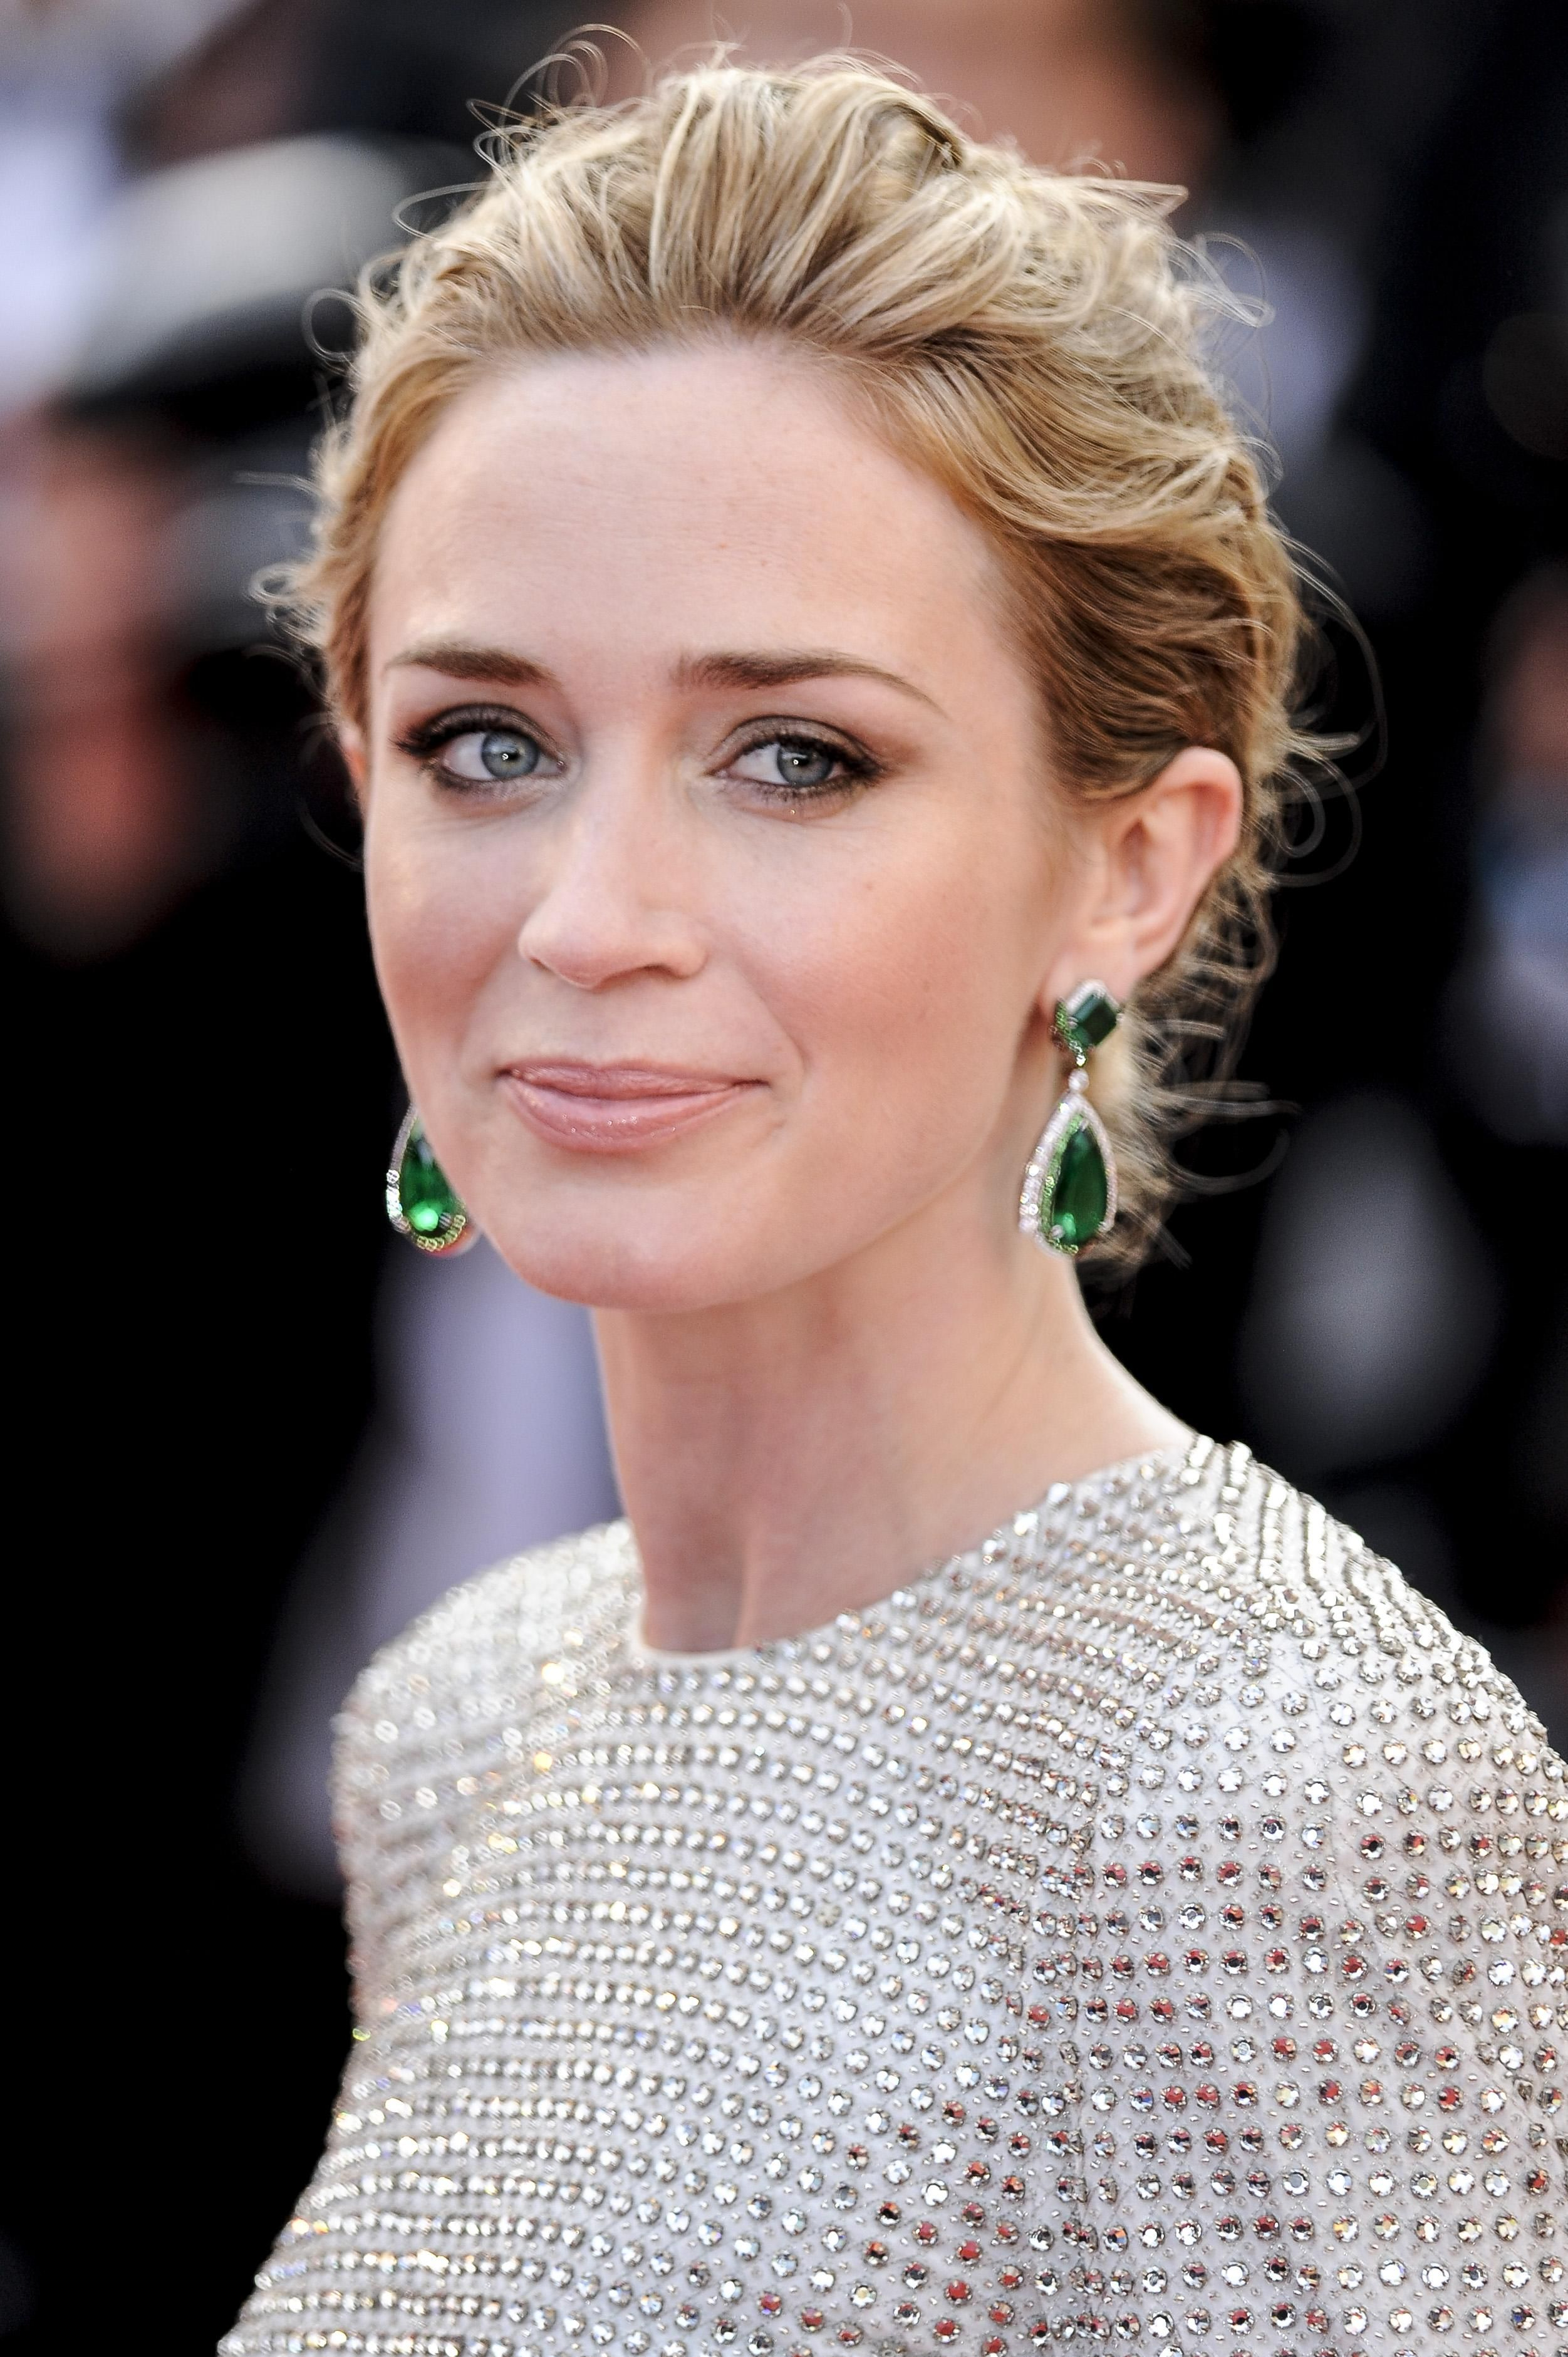 35 Famous Women Who Are Beautiful And Funny Emily Blunt Beauty Trends Famous Women